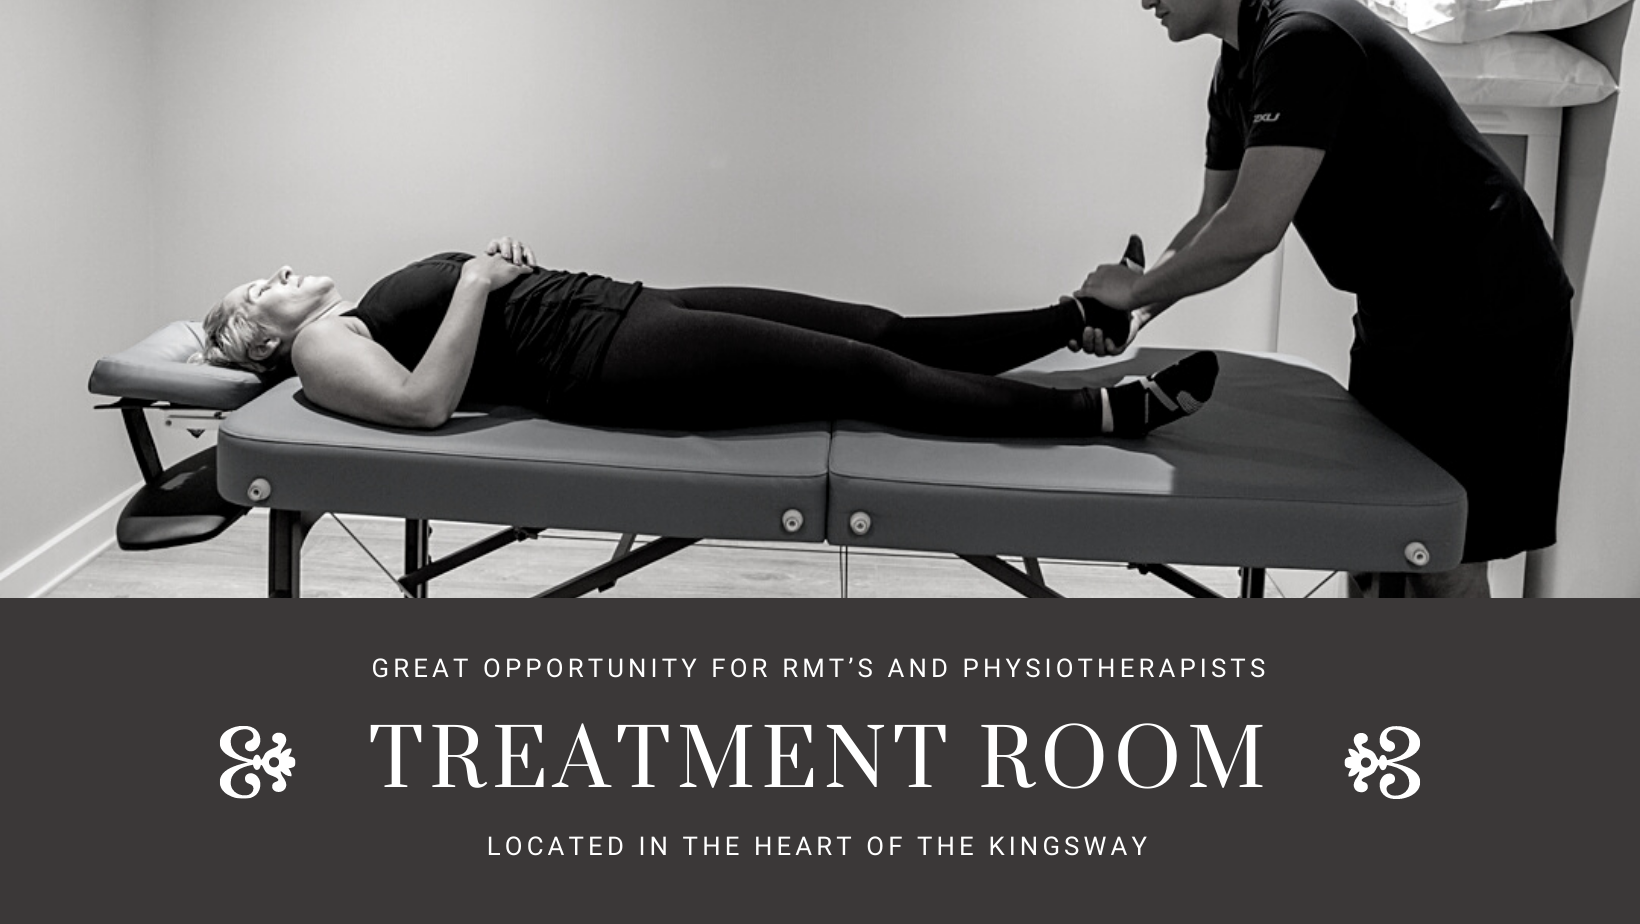 Great Opportunity For RMT's and Physiotherapists In the Heart Of The Kingsway